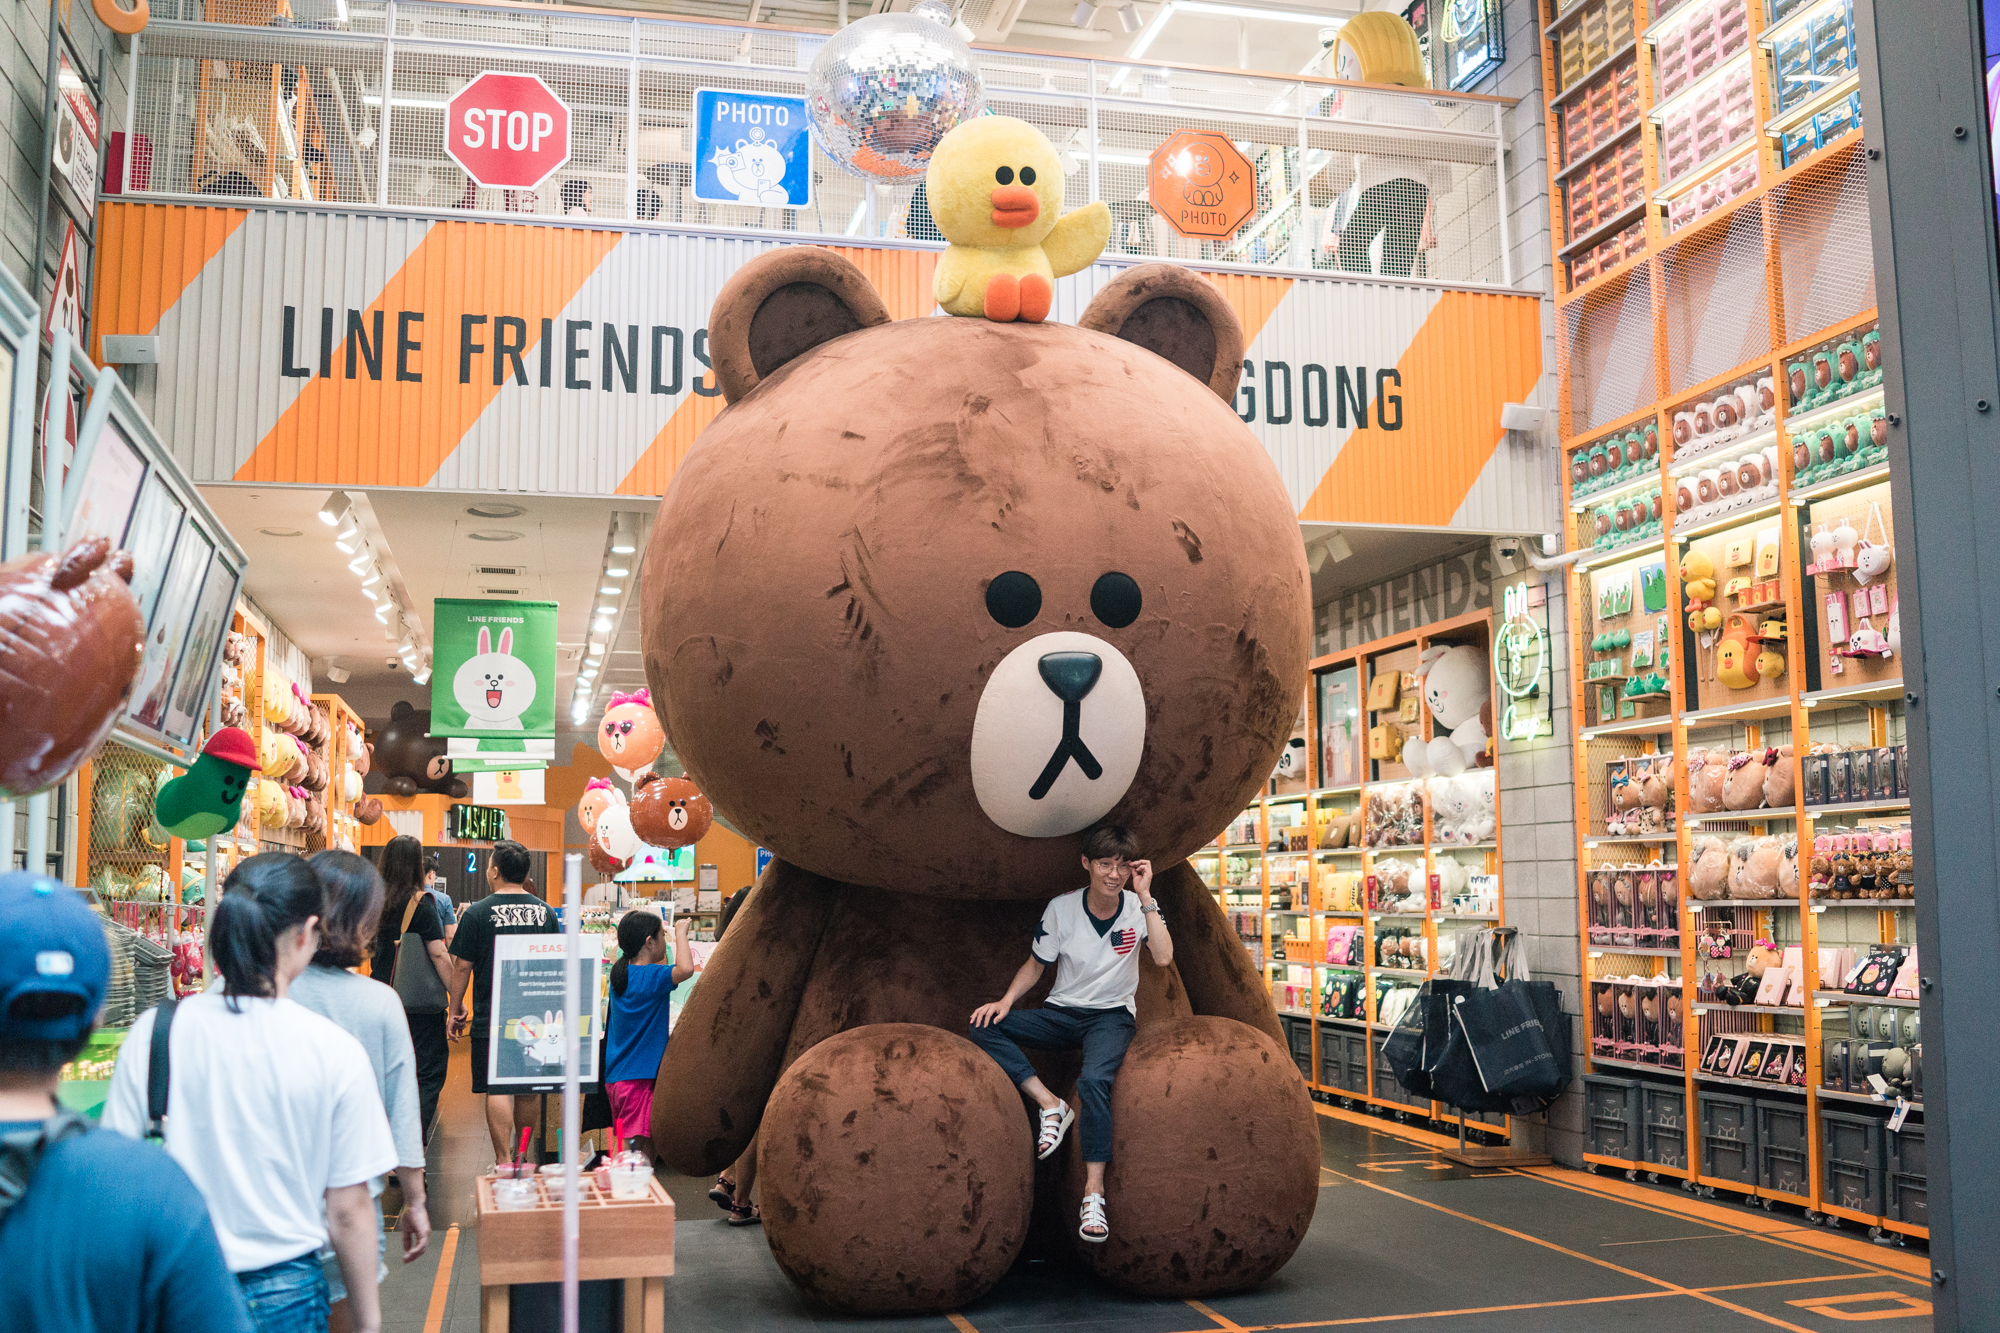 Line Friends Store in Seoul South Korea